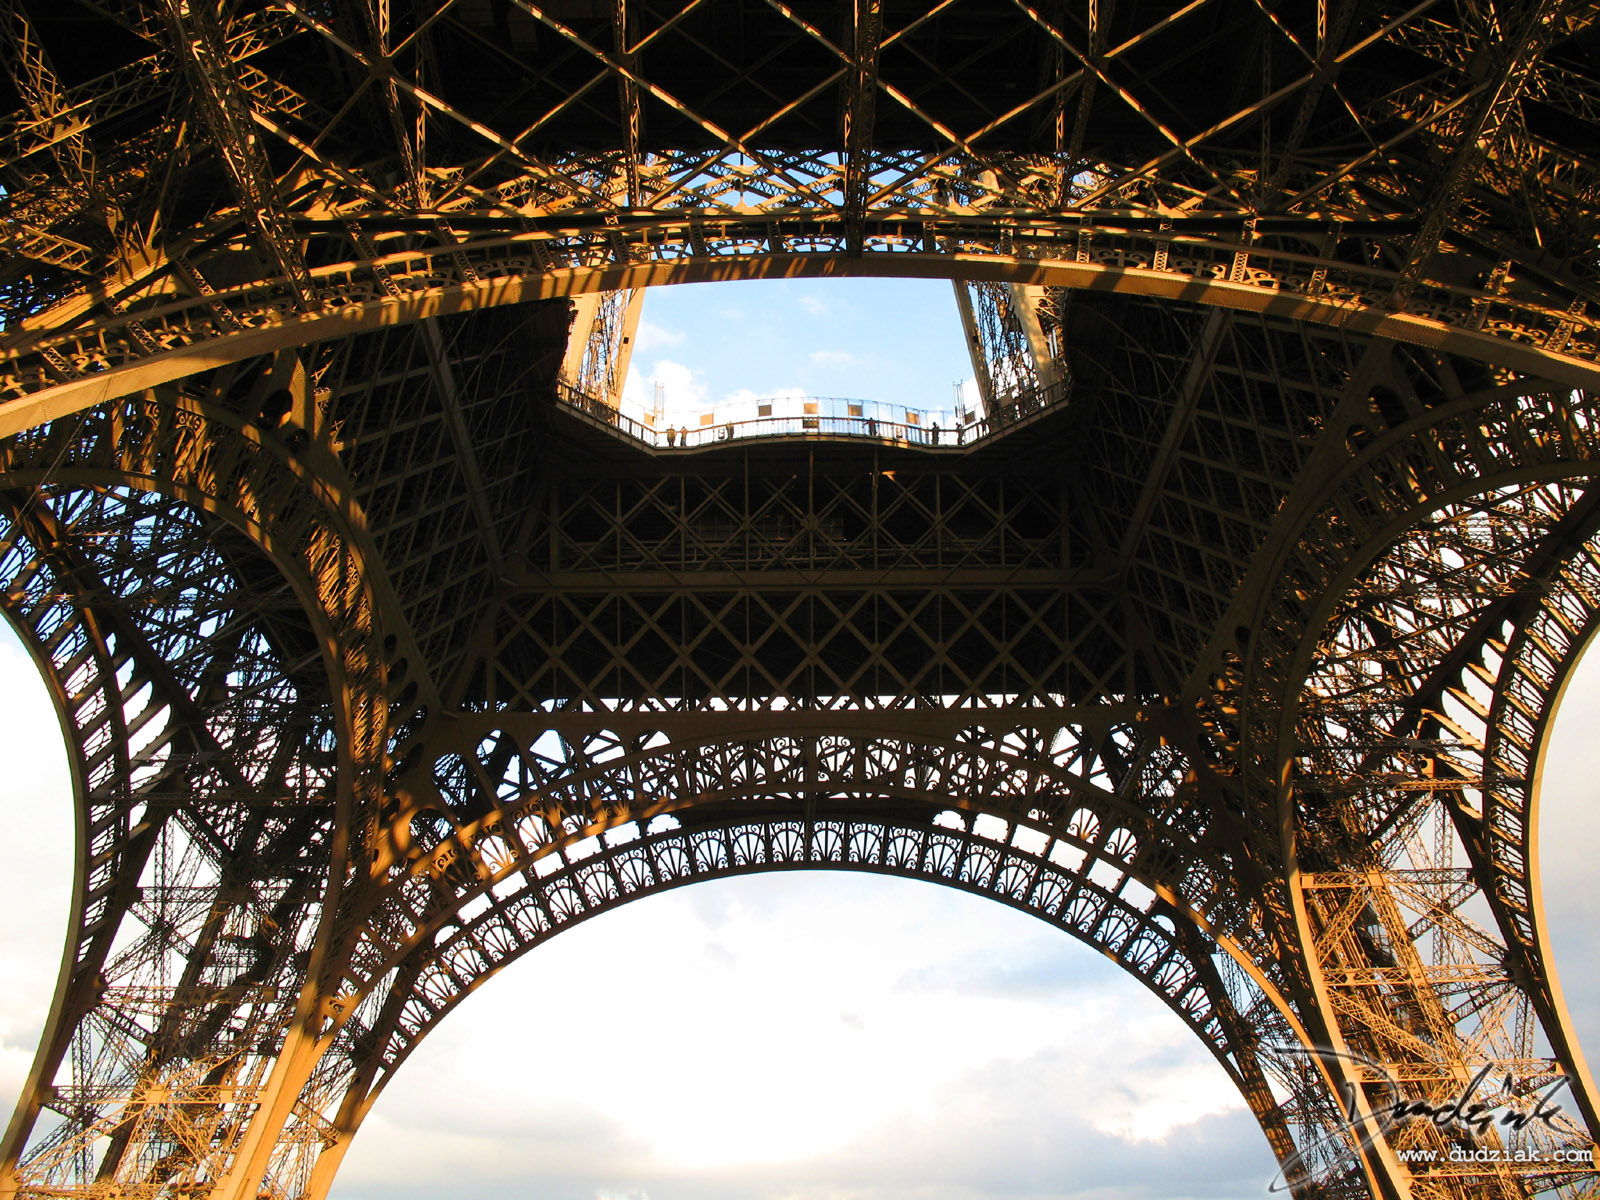 Picture of the underside of the Eiffel Tower in Paris.